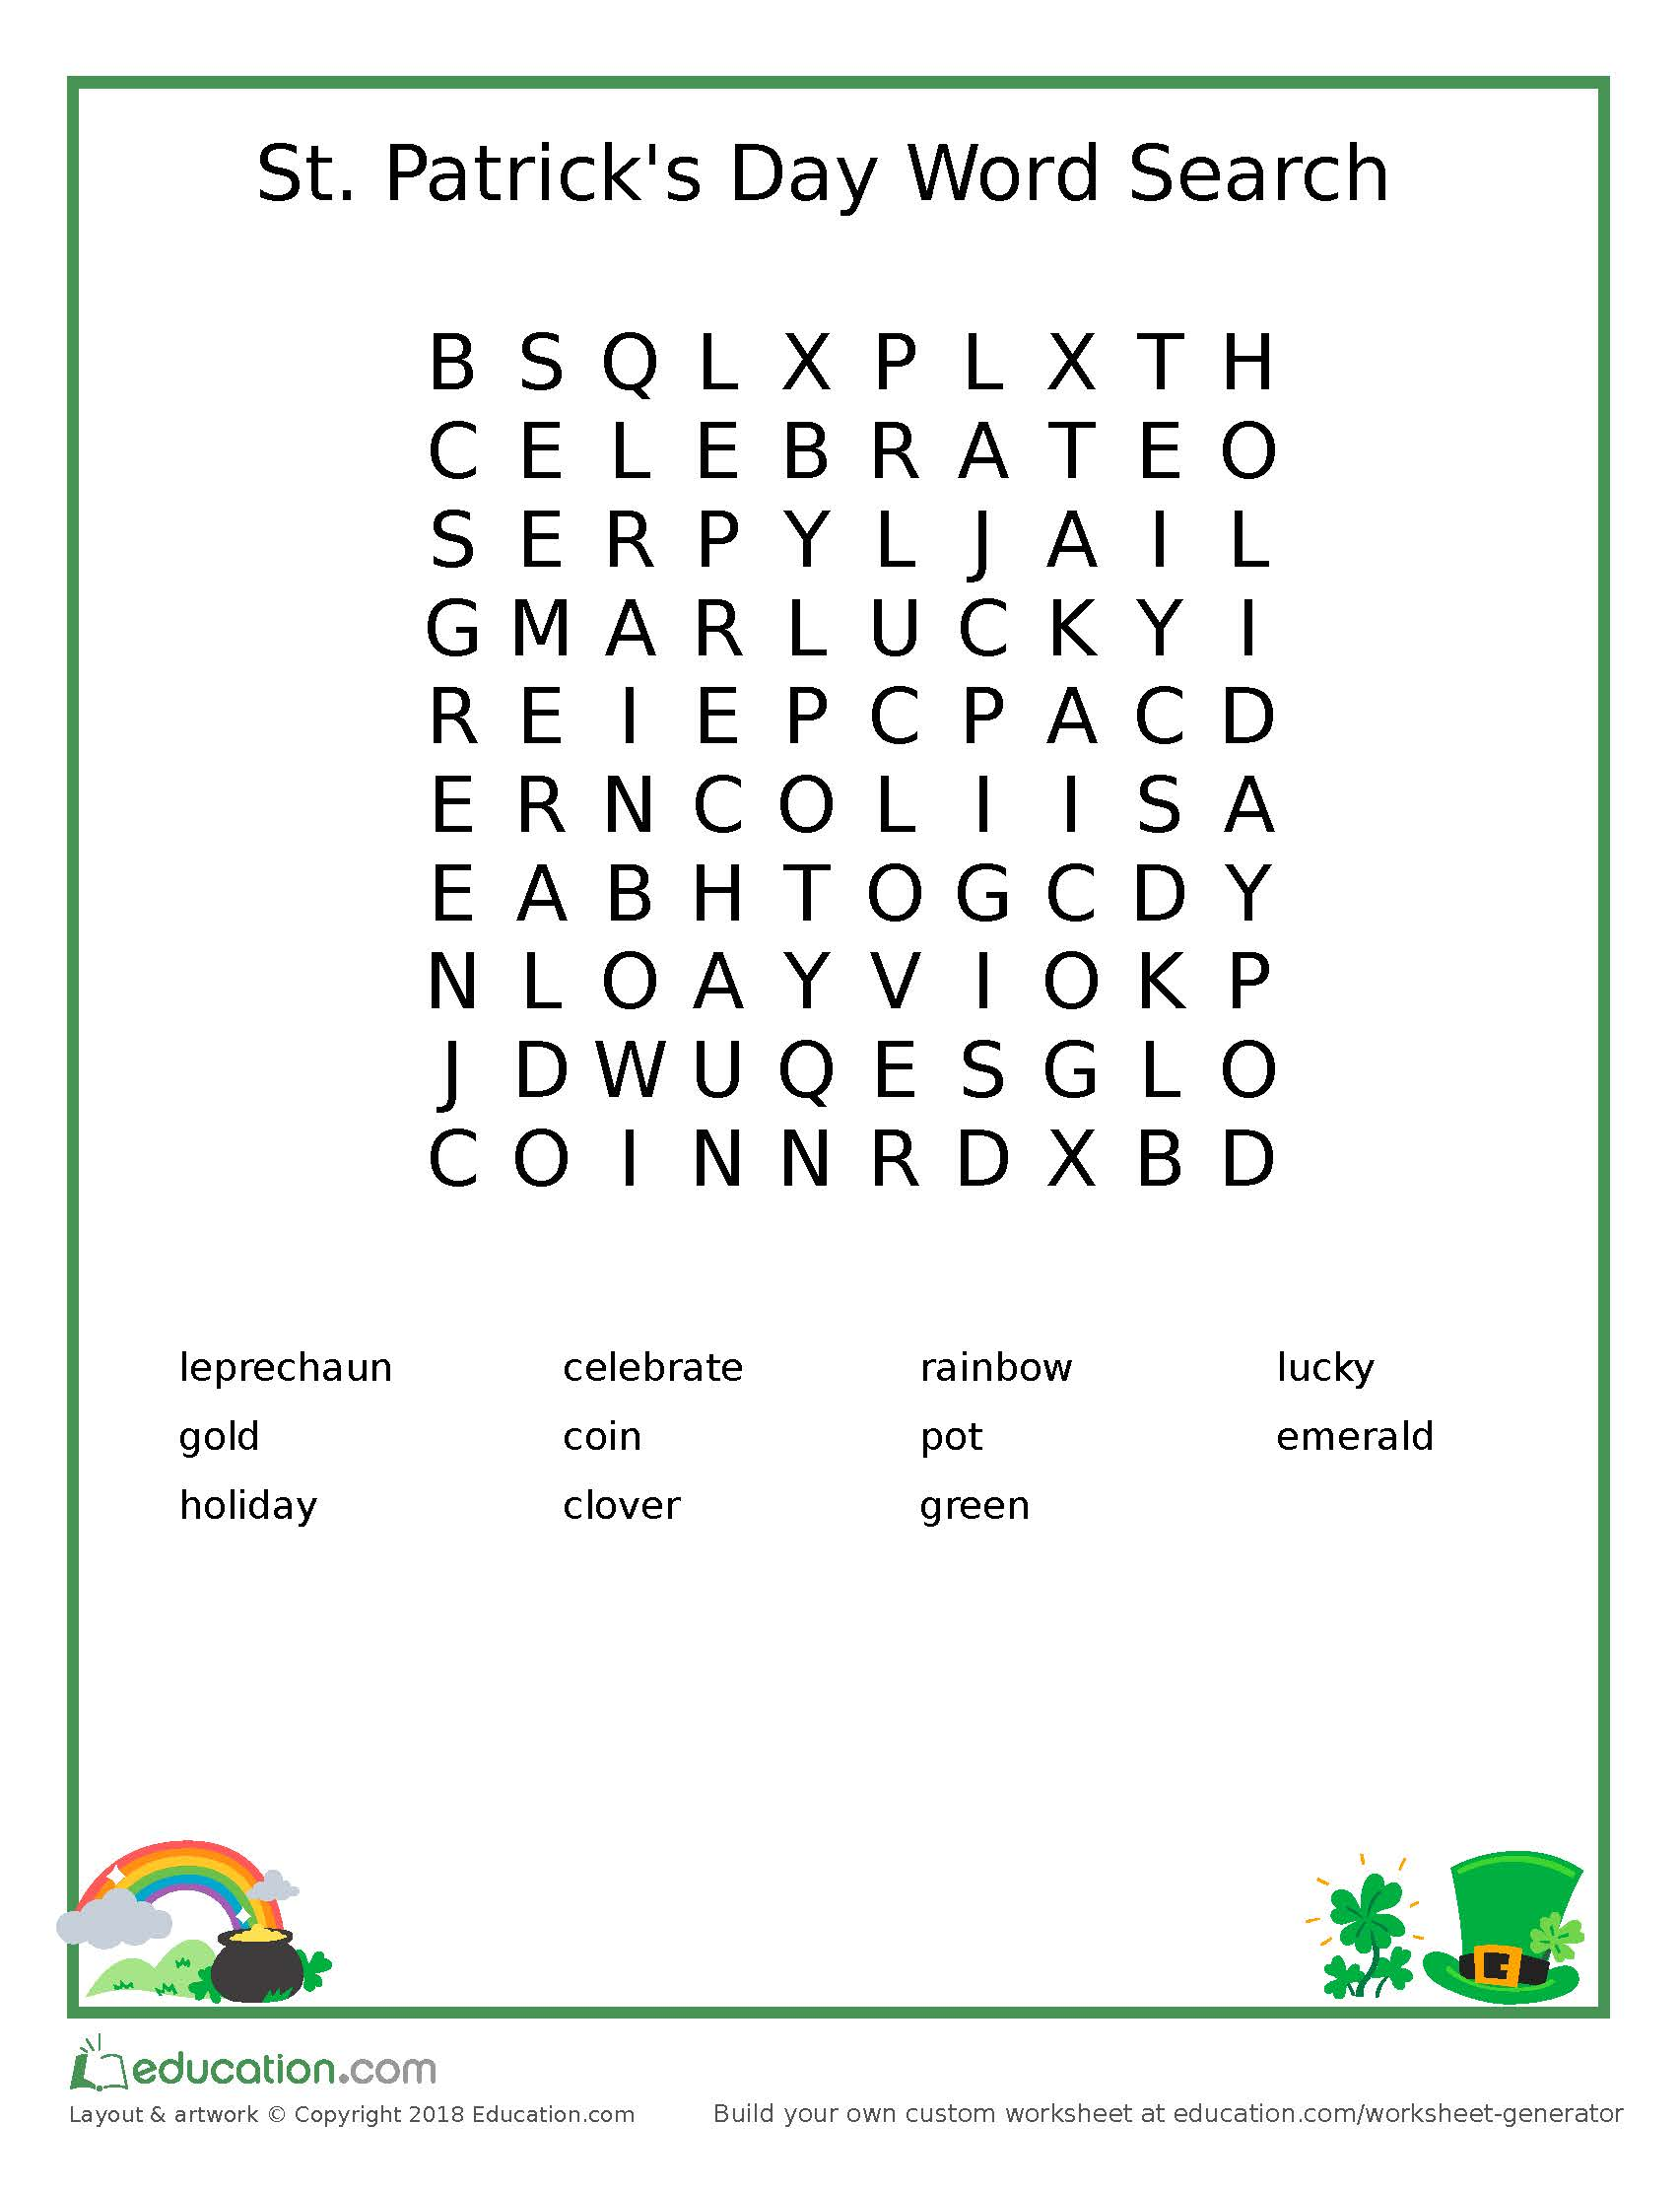 word_search_clover